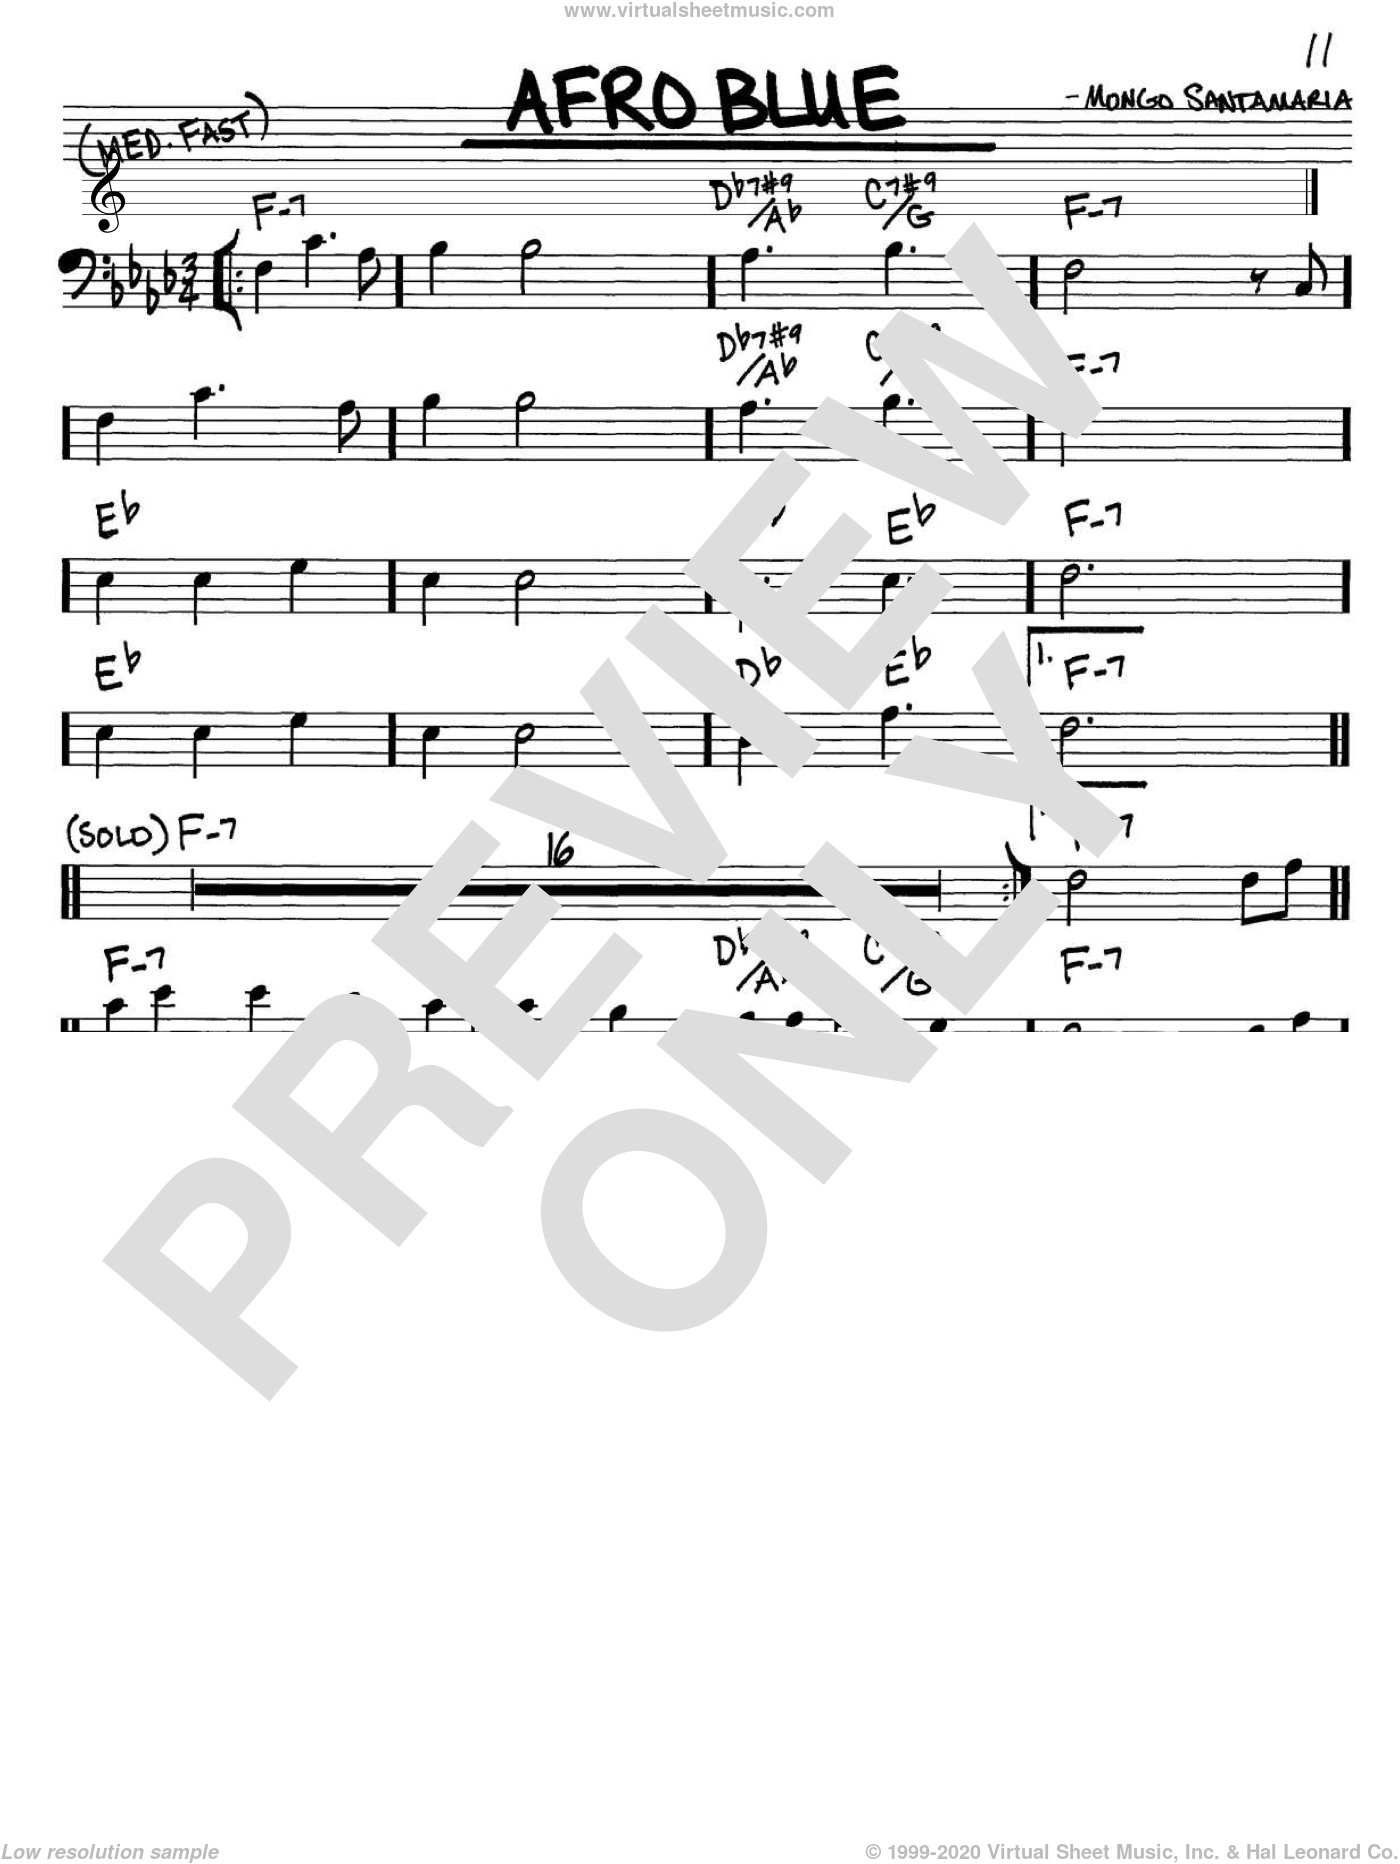 Afro Blue sheet music for voice and other instruments (Bass Clef ) by Mongo Santamaria